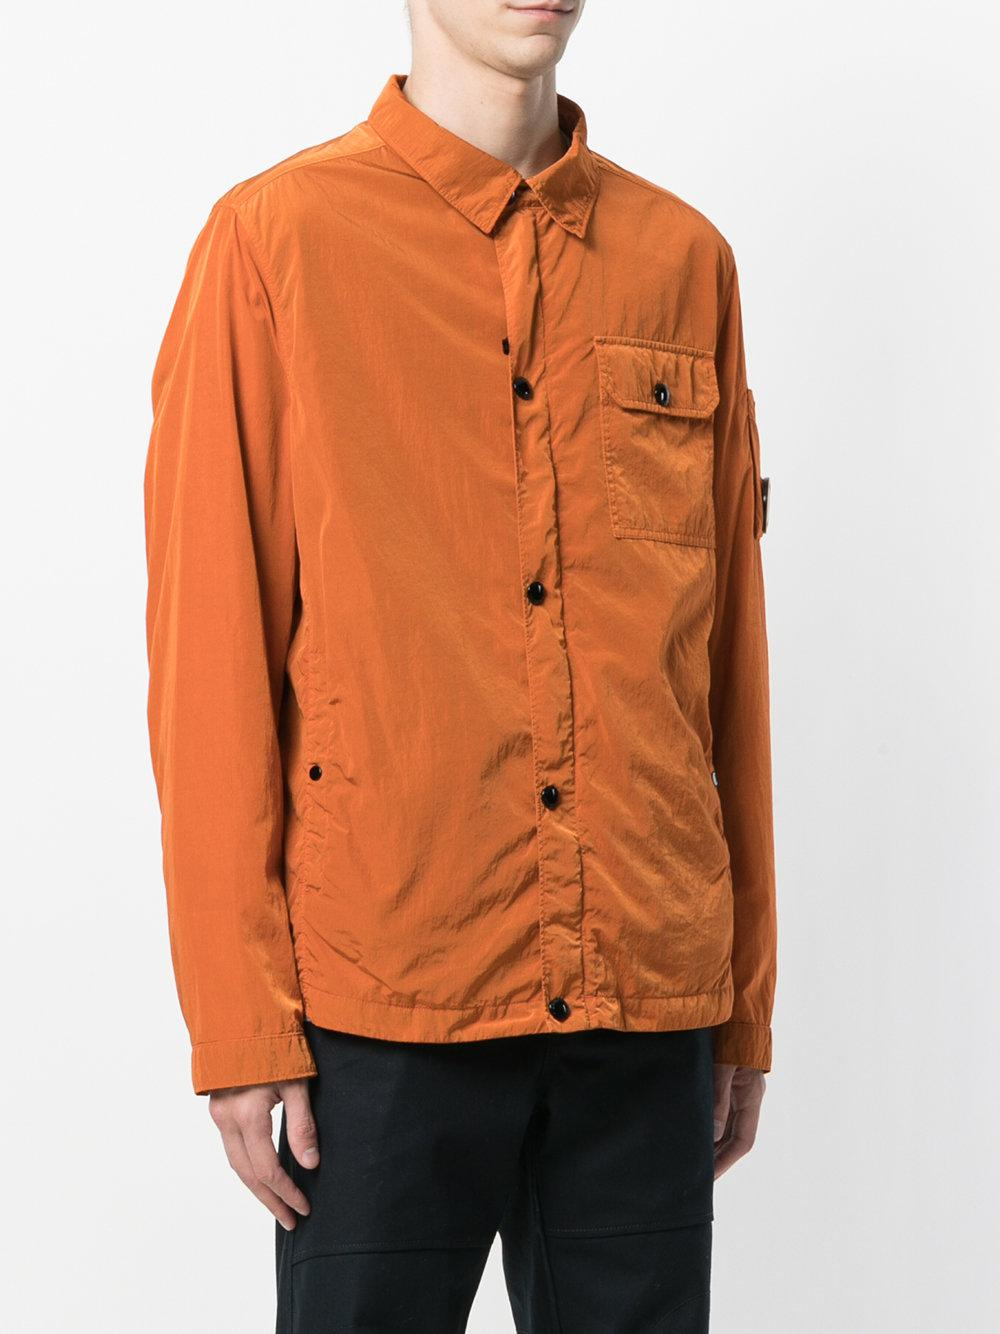 yellow jacket single men over 50 Discover the complete range of women's coats and jackets from the latest armani exchange collection browse the a|x official online store today.